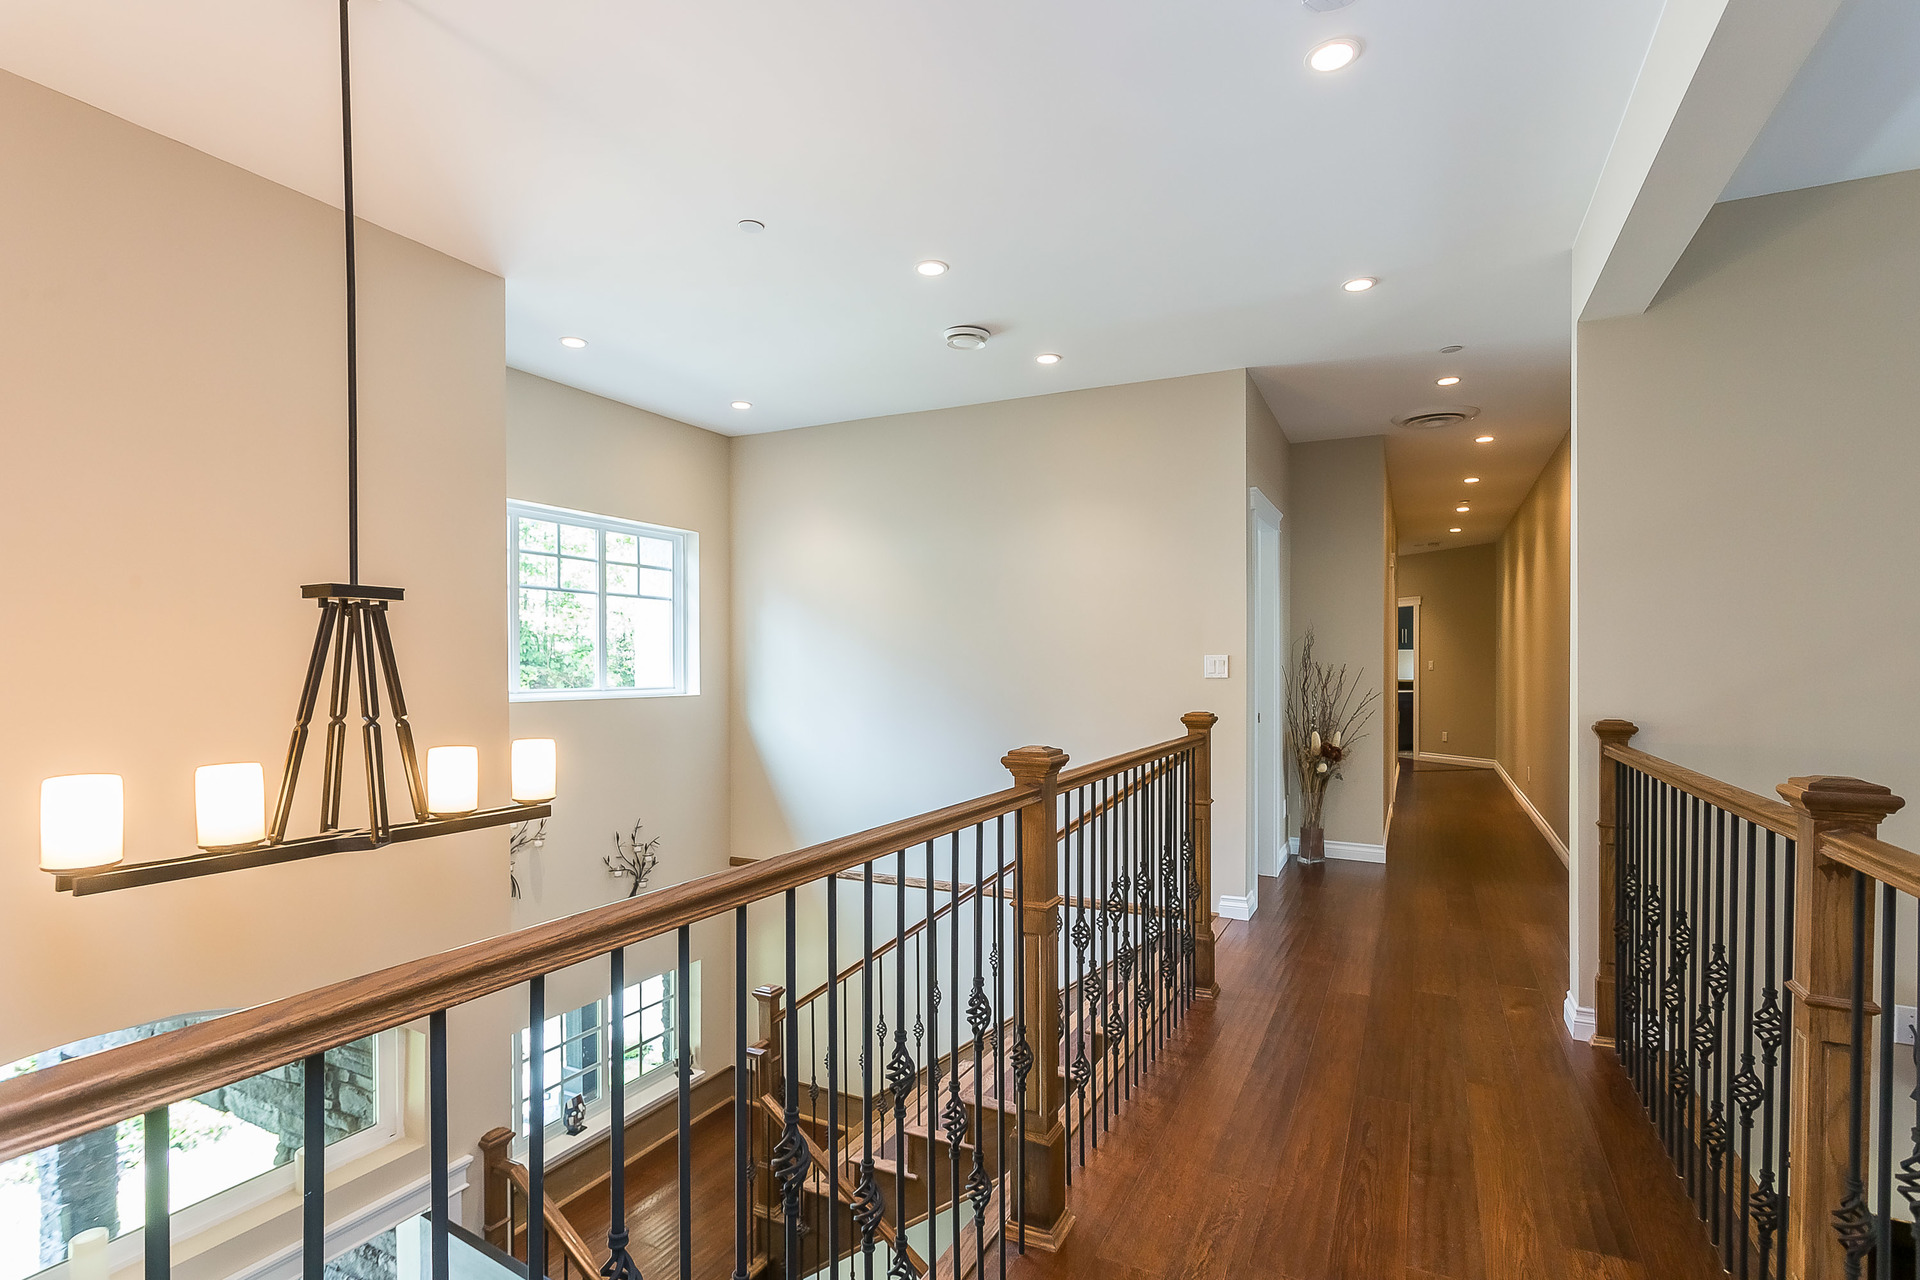 Hallway Open to Main Floor at 1408 Crystal Creek Drive, Anmore, Port Moody